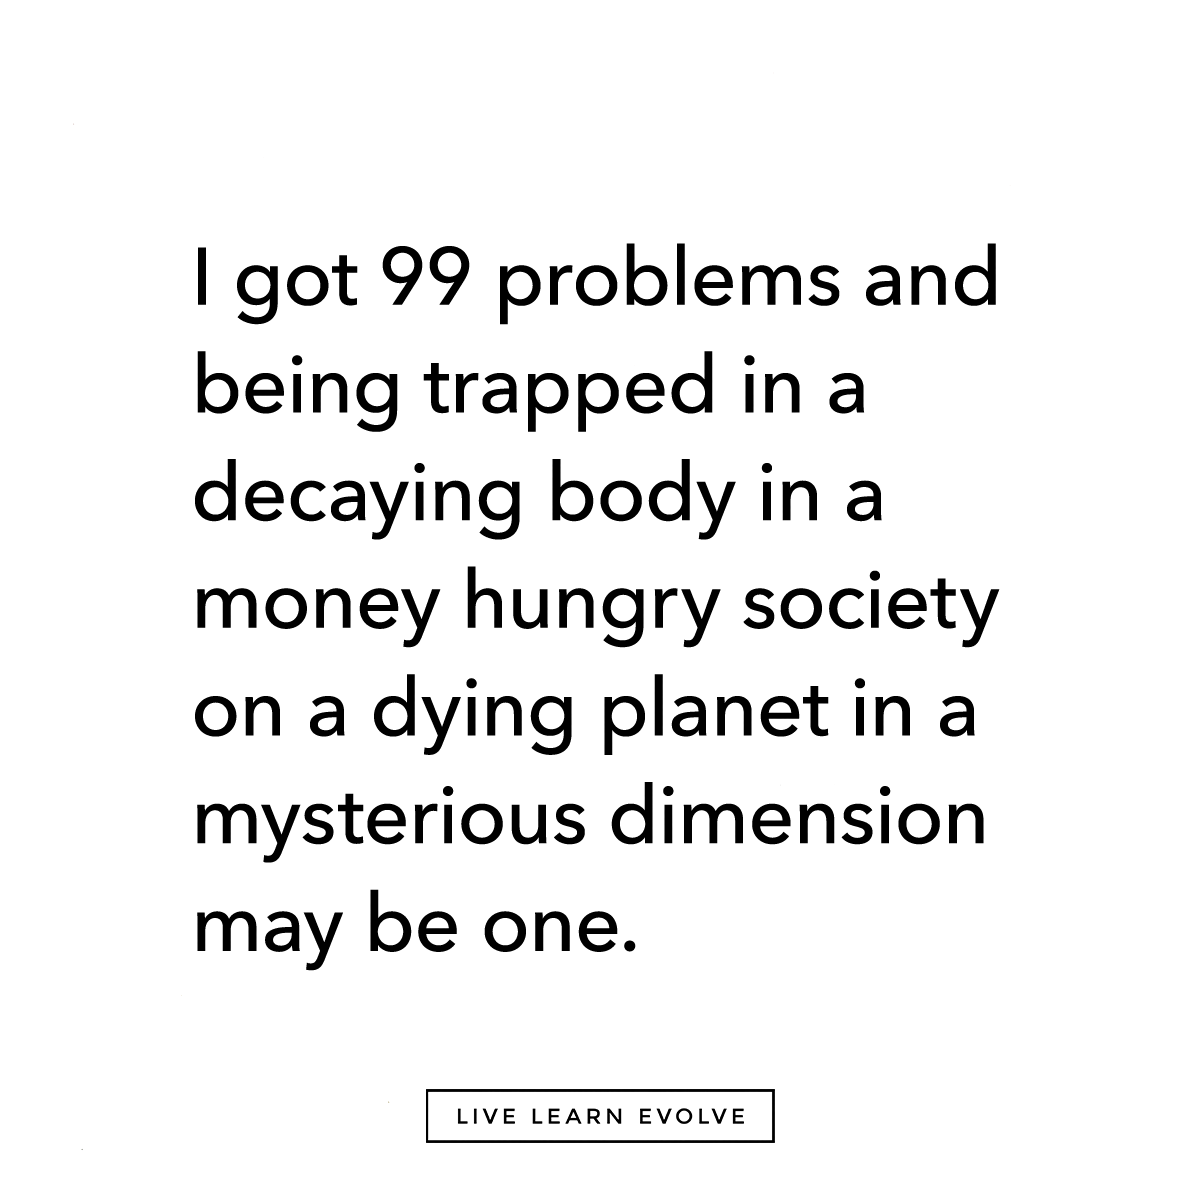 I Have 99 Problems